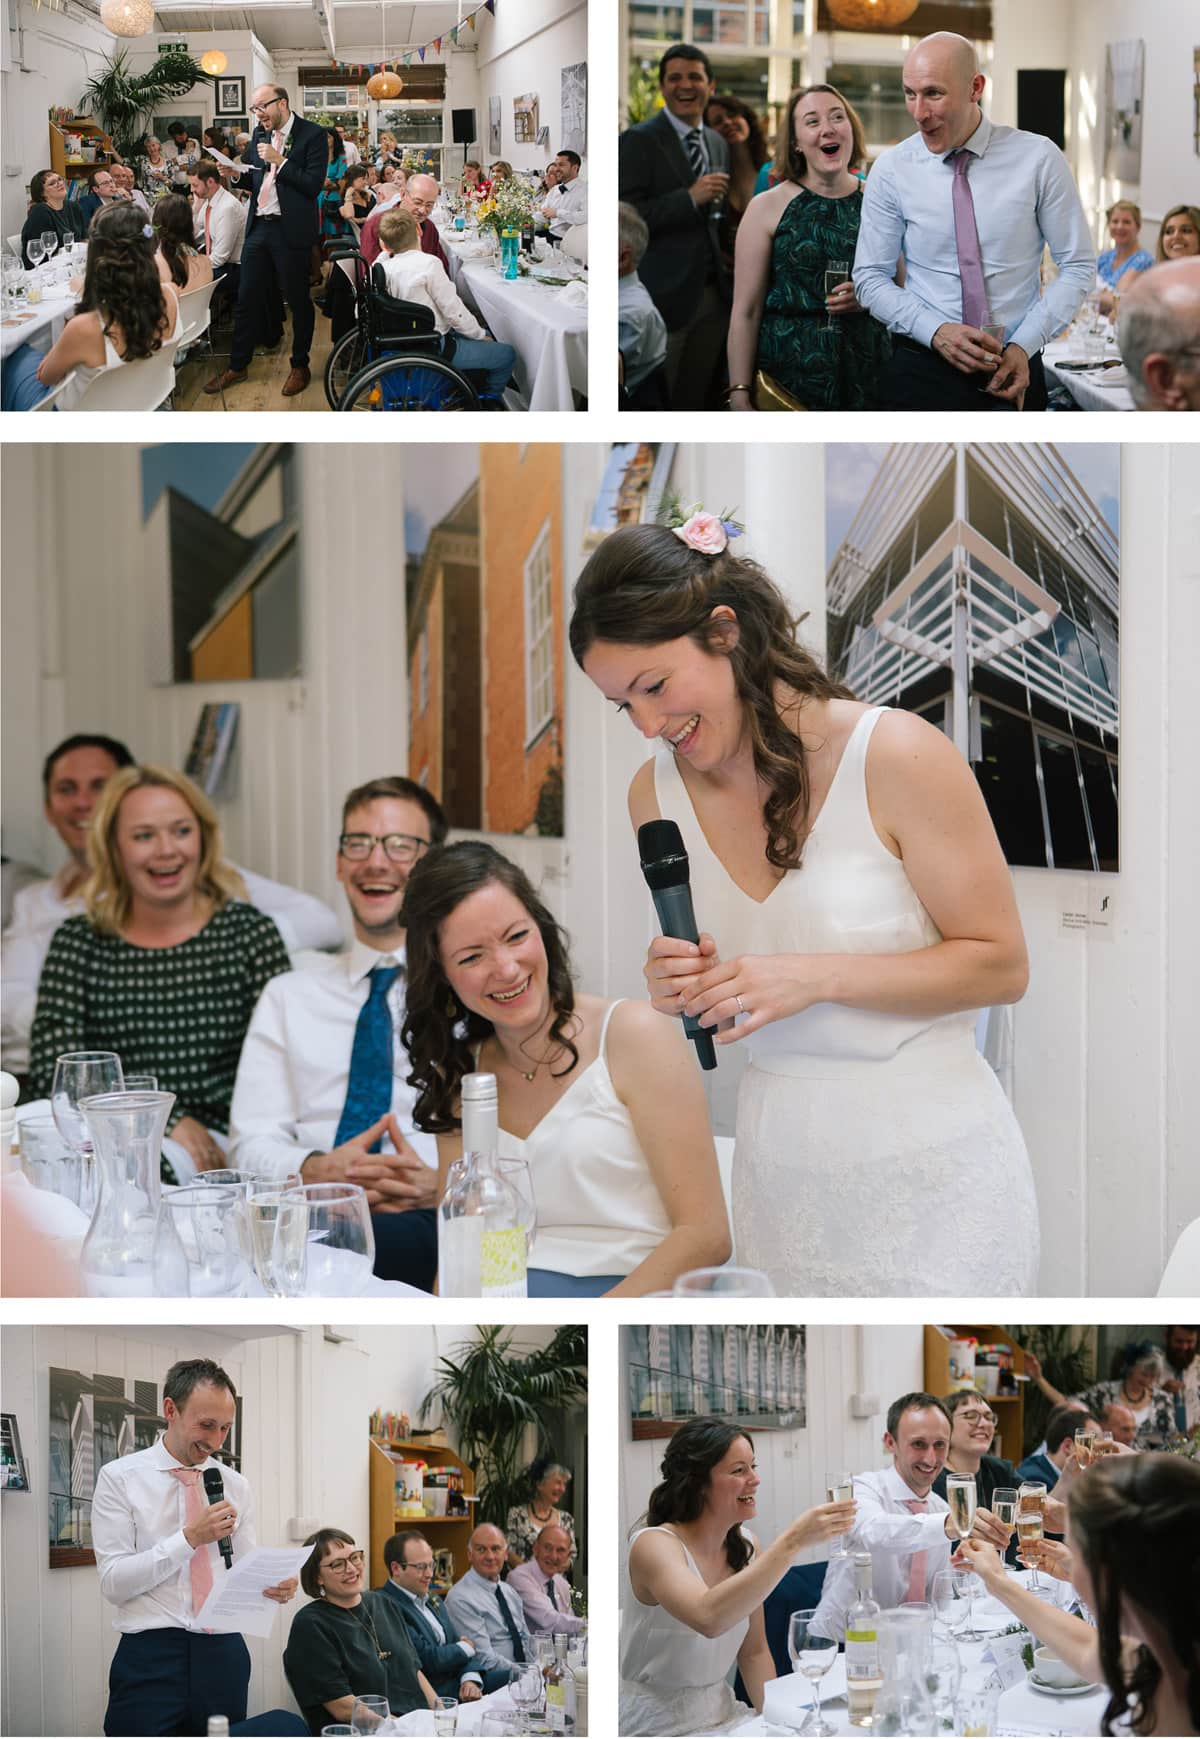 Collage of images of the wedding speeches at The Jam Factory, Oxford.